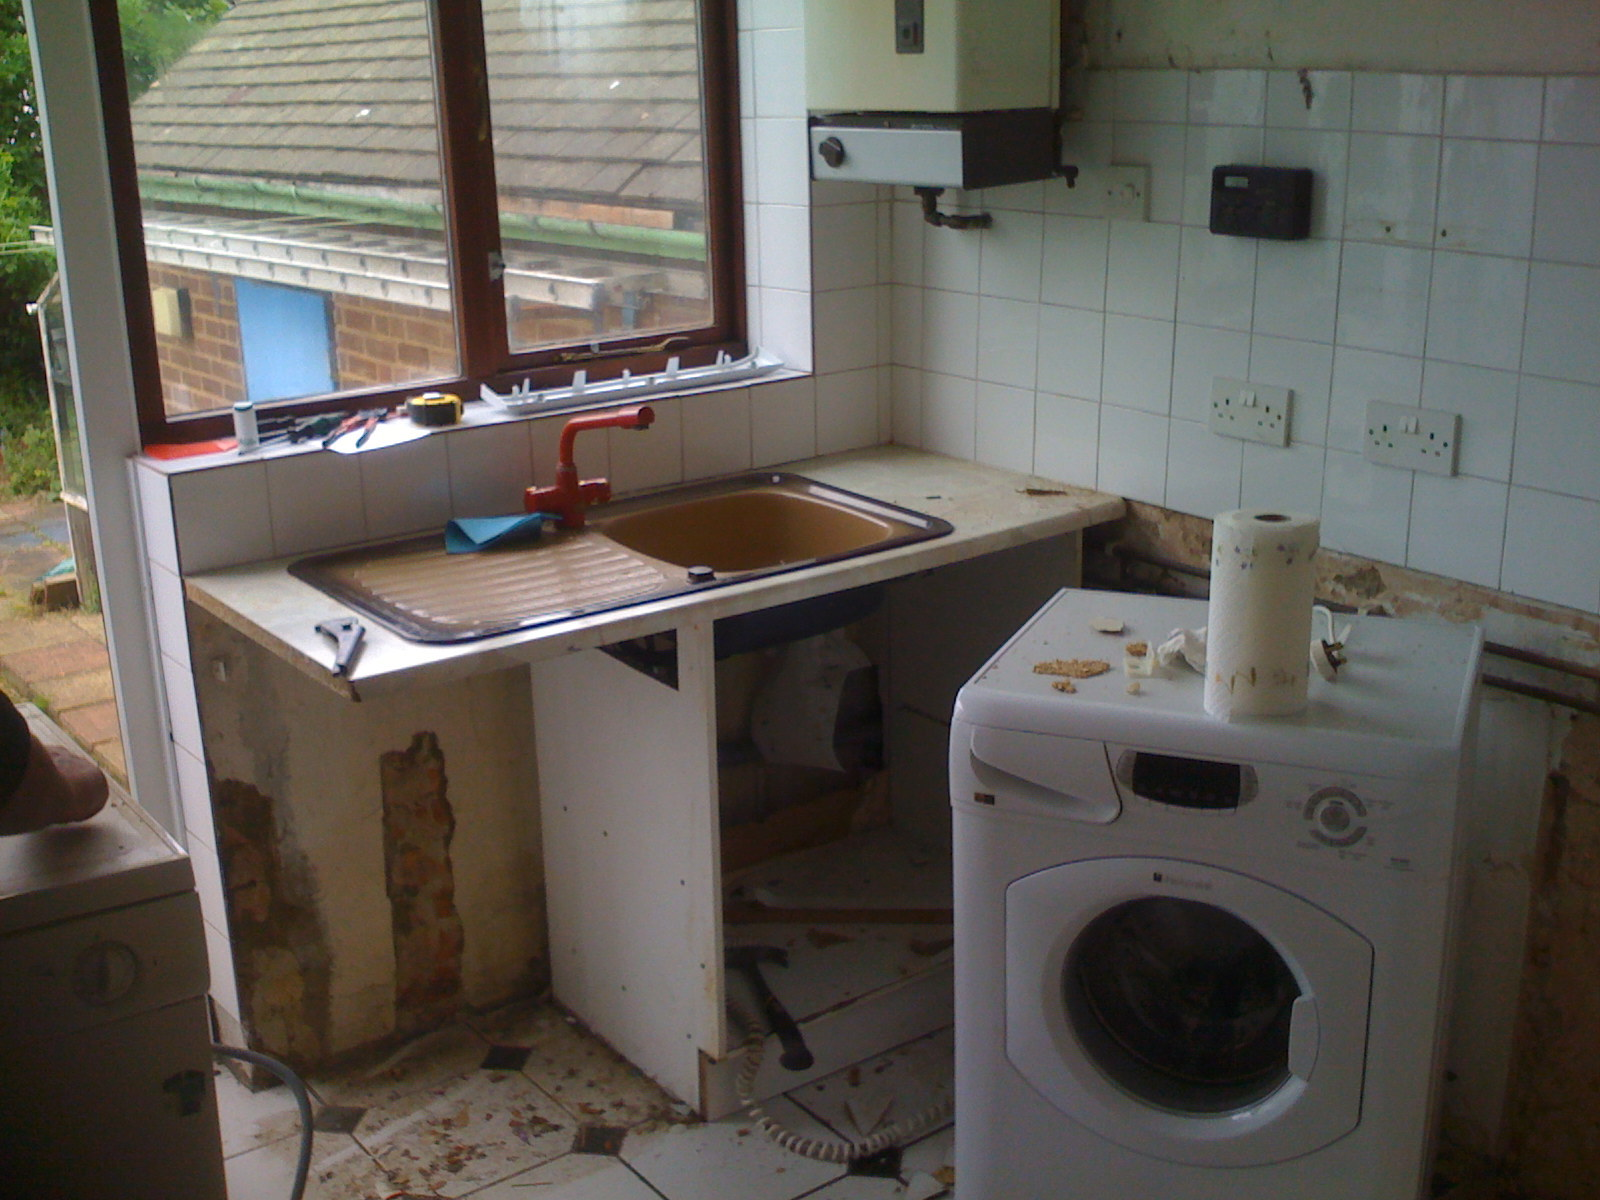 Outdated unusable kitchen